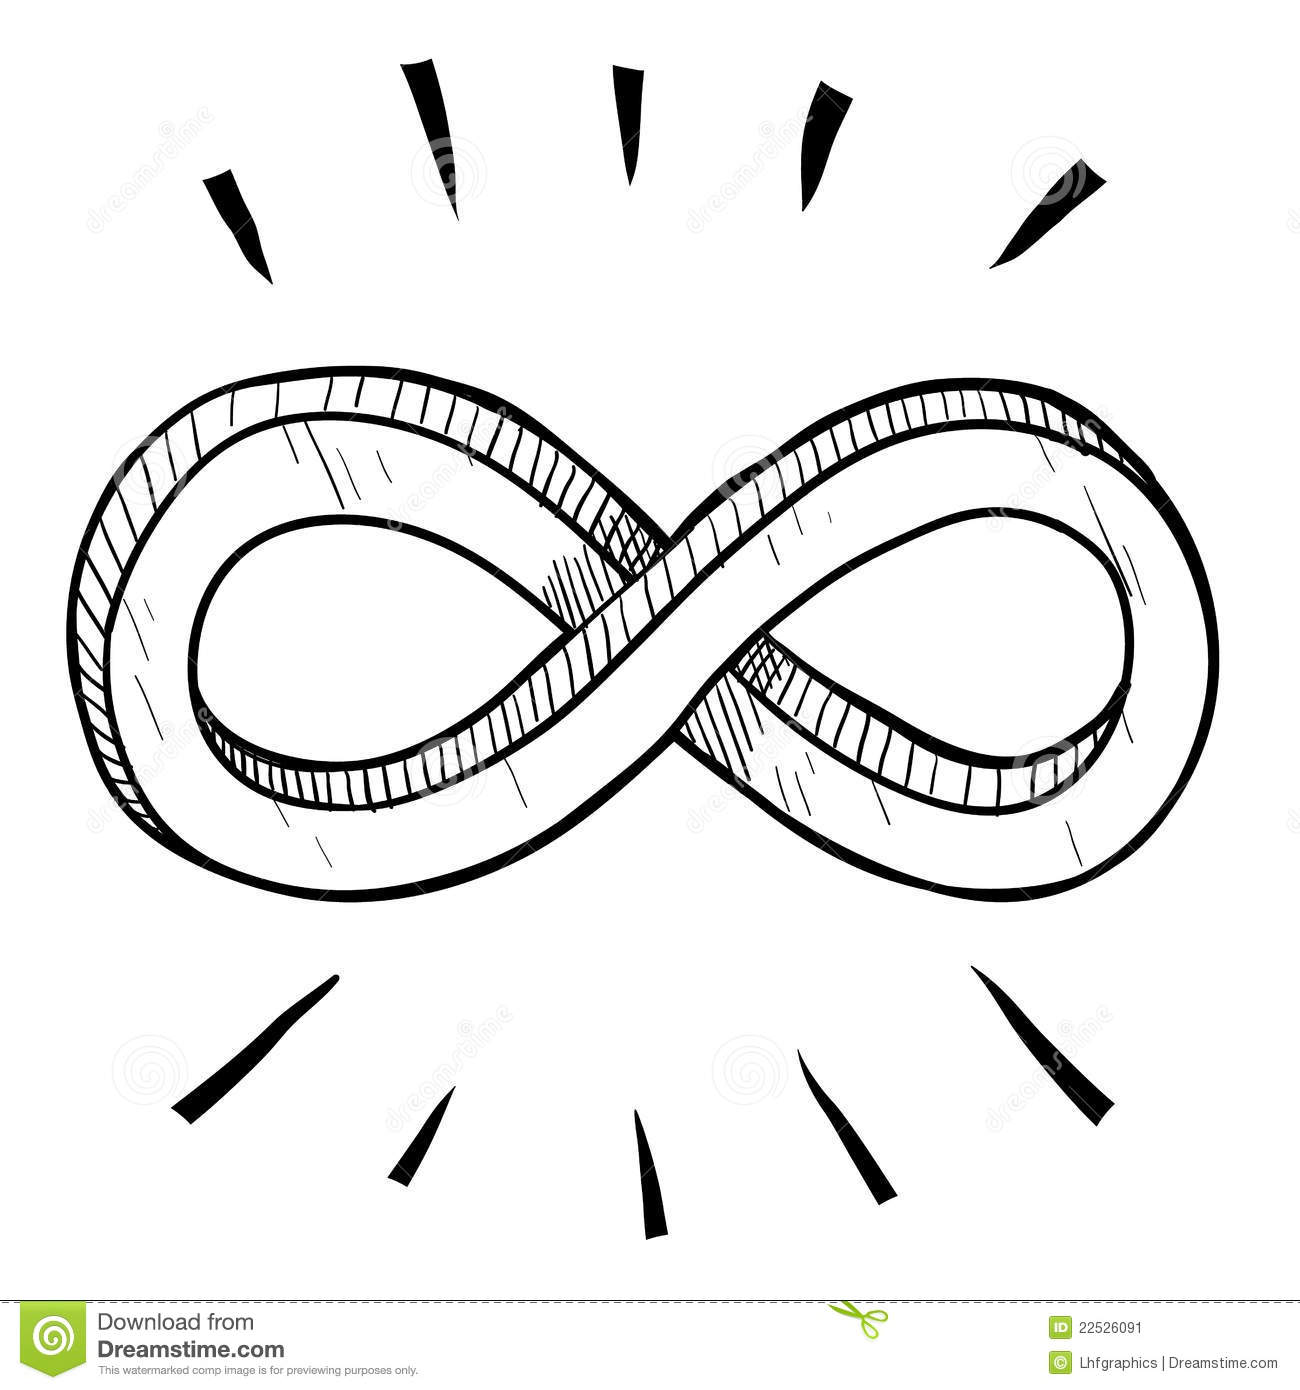 Infinity symbol sketch stock vector illustration of endless infinity symbol sketch biocorpaavc Gallery